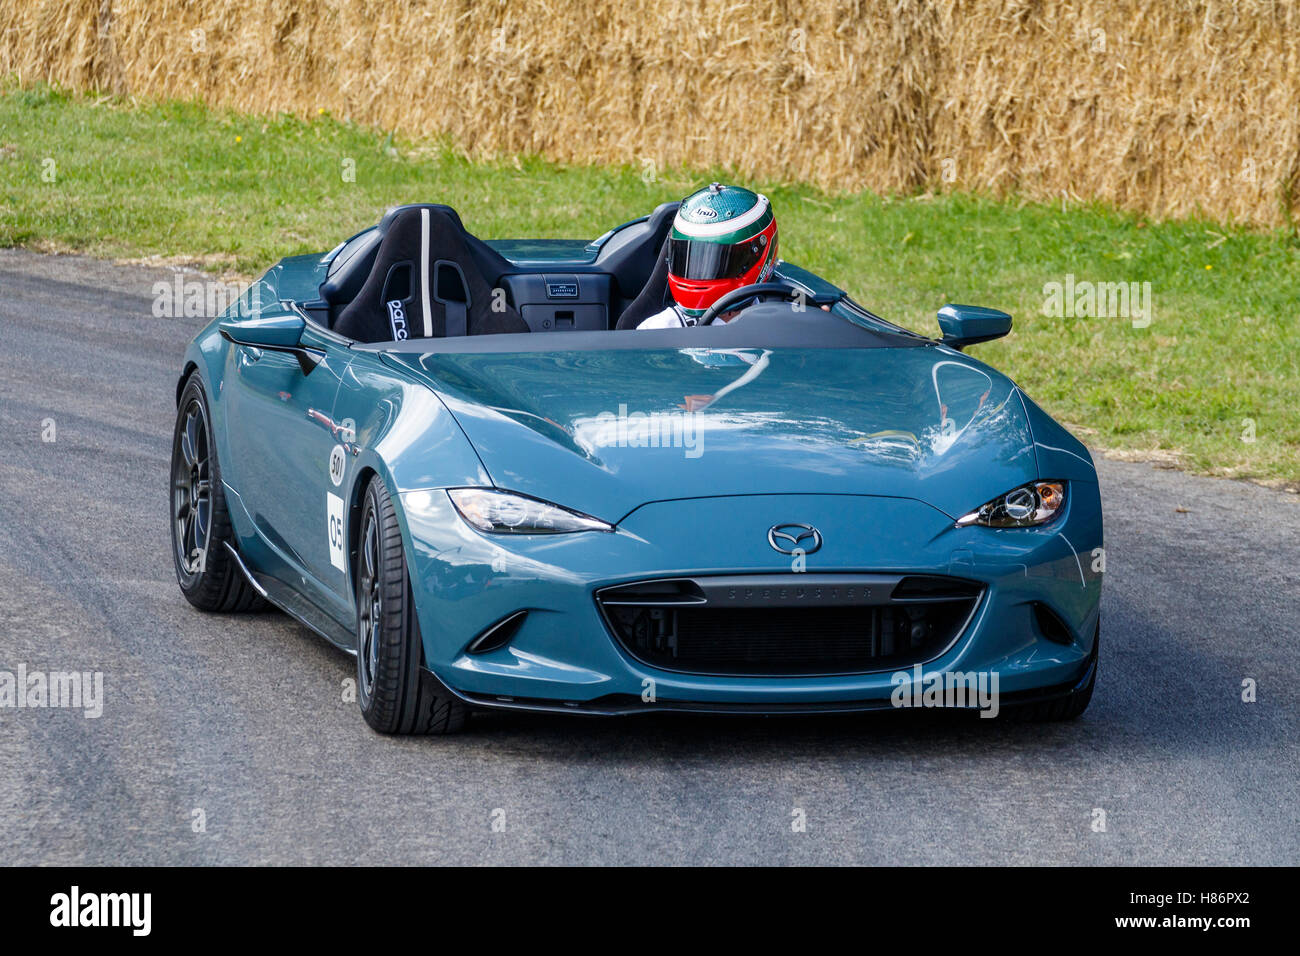 mx 5 stockfotos & mx 5 bilder - alamy